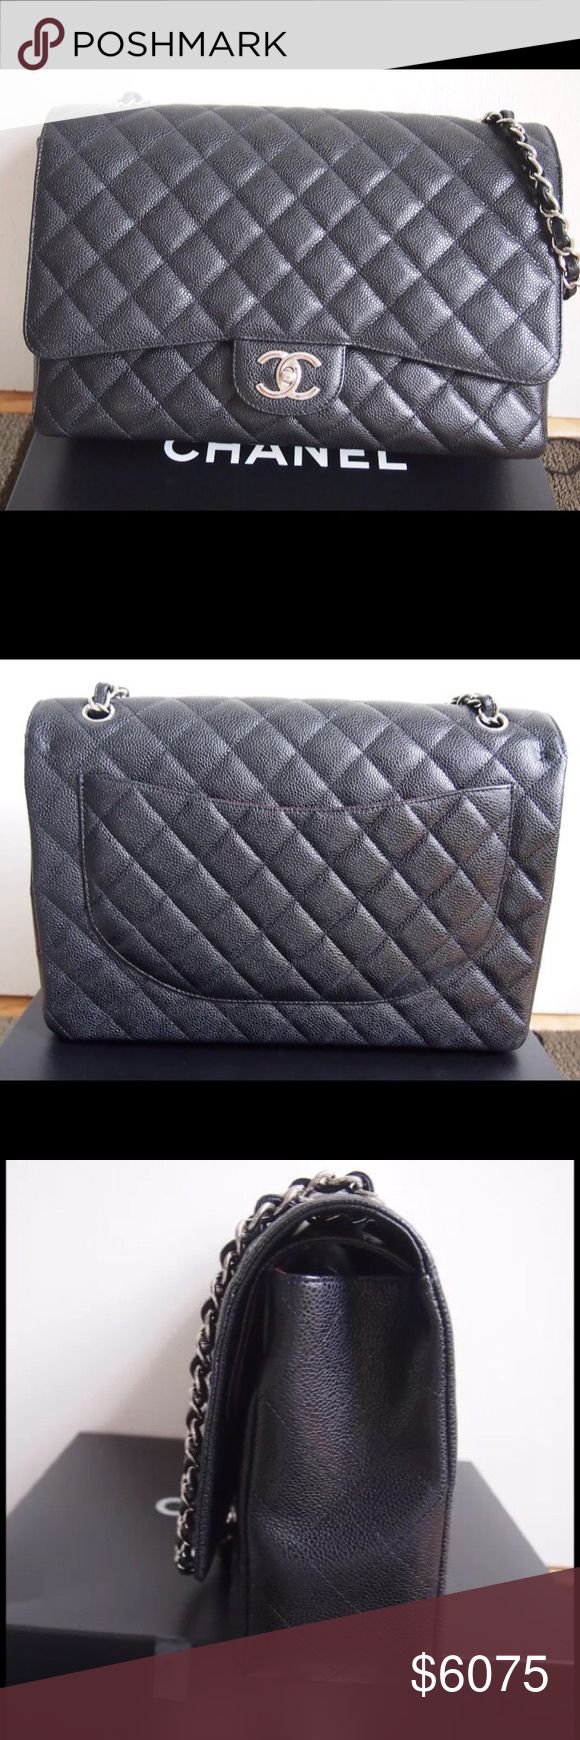 """CHANEL CLASSIC MAXI FLAP BAG CAVIAR WITH SILVER HW CHANEL CLASSIC MAXI FLAP BAG CAVIAR LEATHER WITH SILVER HARDWARE   New Chanel Classic Maxi Flap Bag in Caviar Leather with Silver Hardware; (Double Flap).   Bag comes with its original box, dust bag, and authenticity card.   Measures: 13.4""""L x 9.1""""H x 3.9""""D   No trades. Price on posh is firm. Serious buyers only!!! CHANEL Bags Shoulder Bags"""